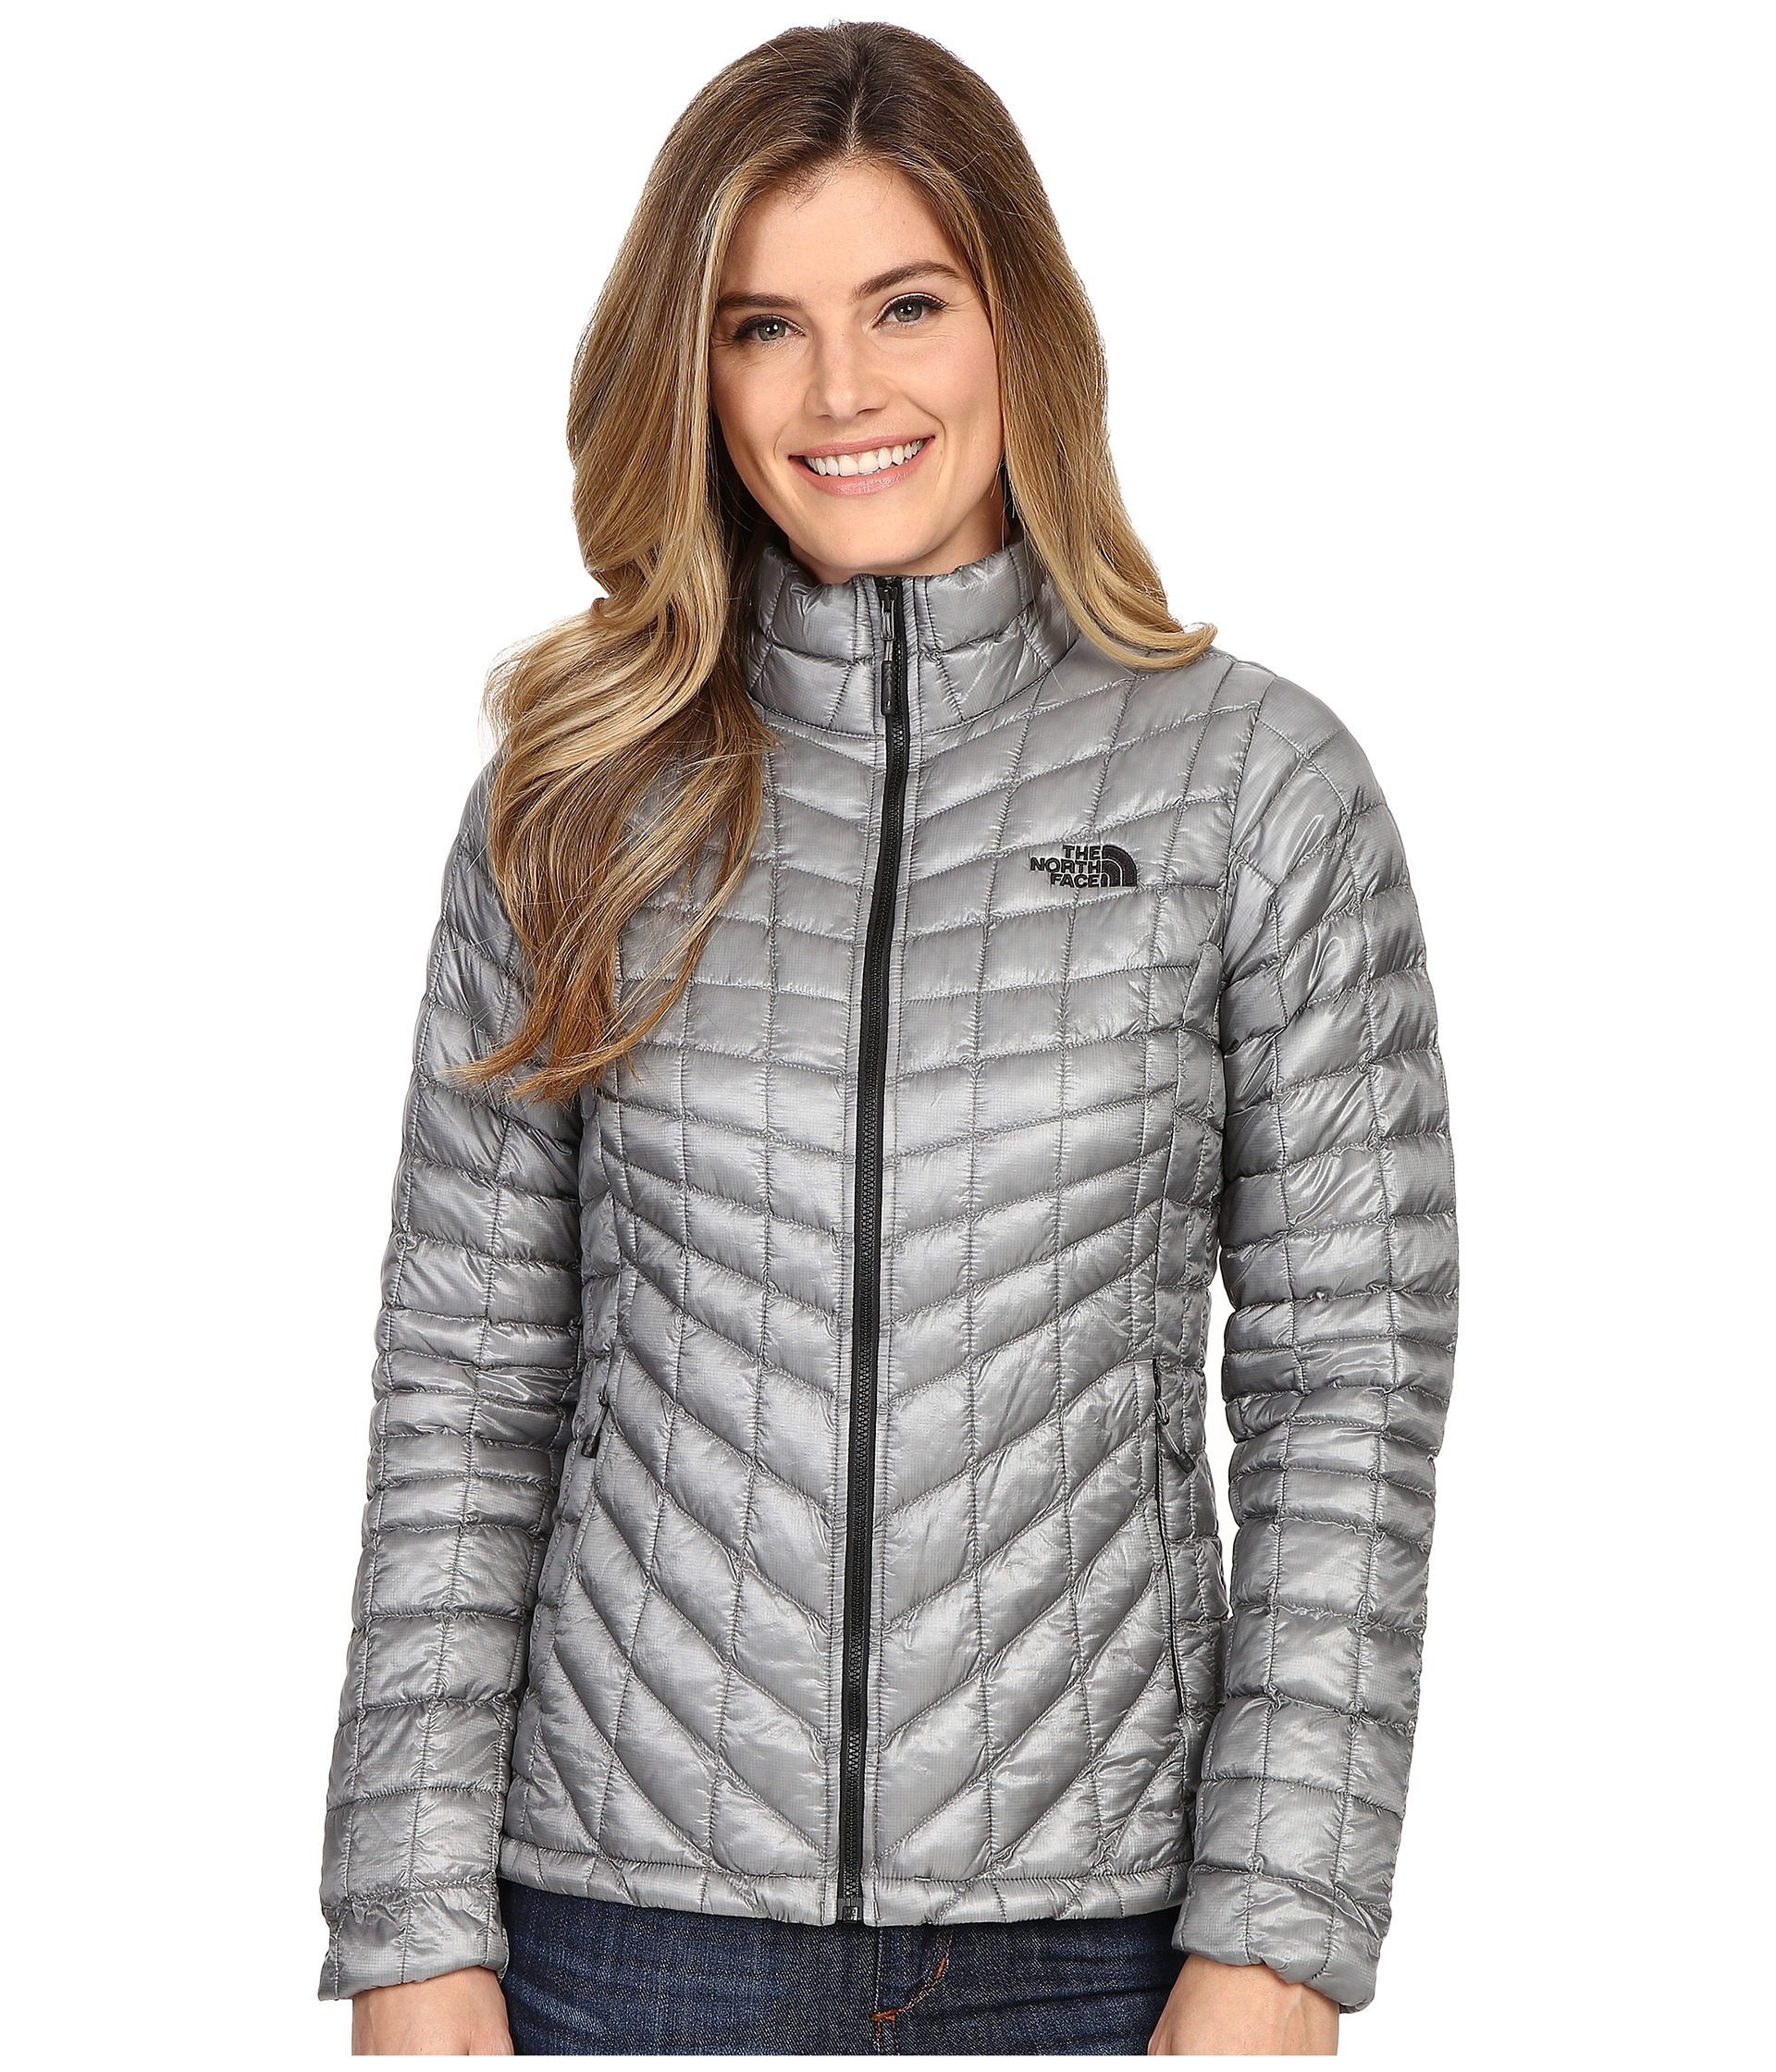 2852257472a6 women s north face thermoball full zip jacket - Marwood ...